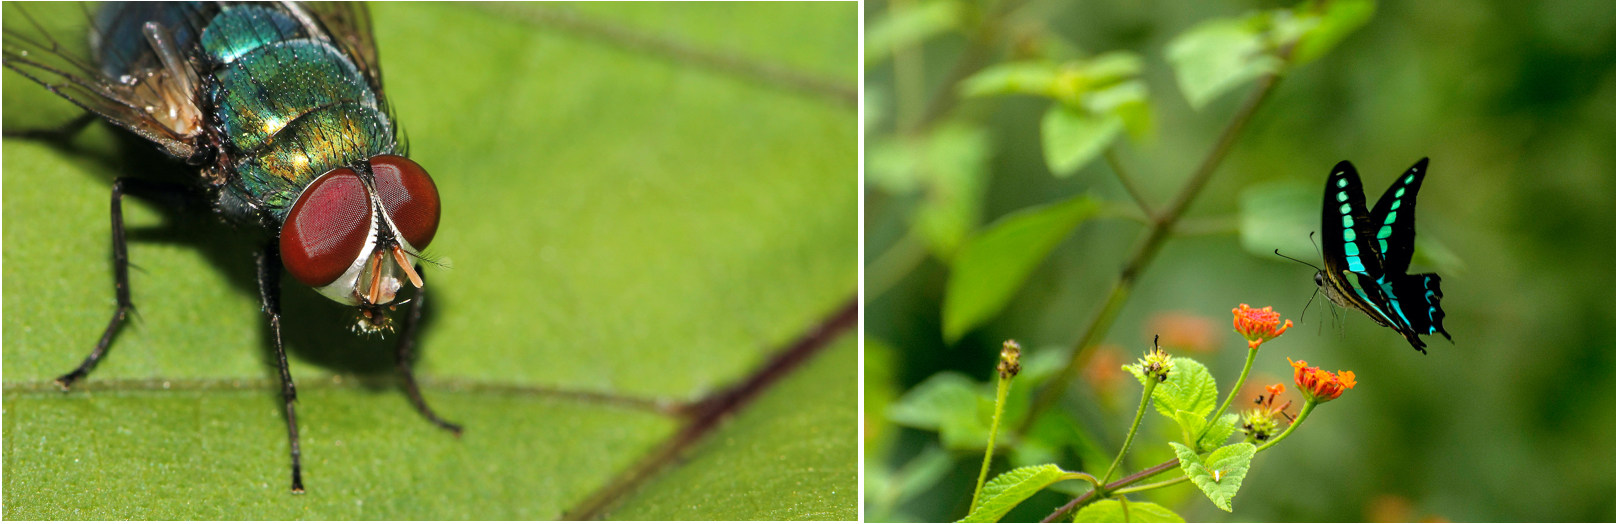 The lake harbours all manner of lifeforms. There are smaller winged wonders such as the common blue bottle fly (left) and common jay butterfly (right) that flutter in the vegetation around. 